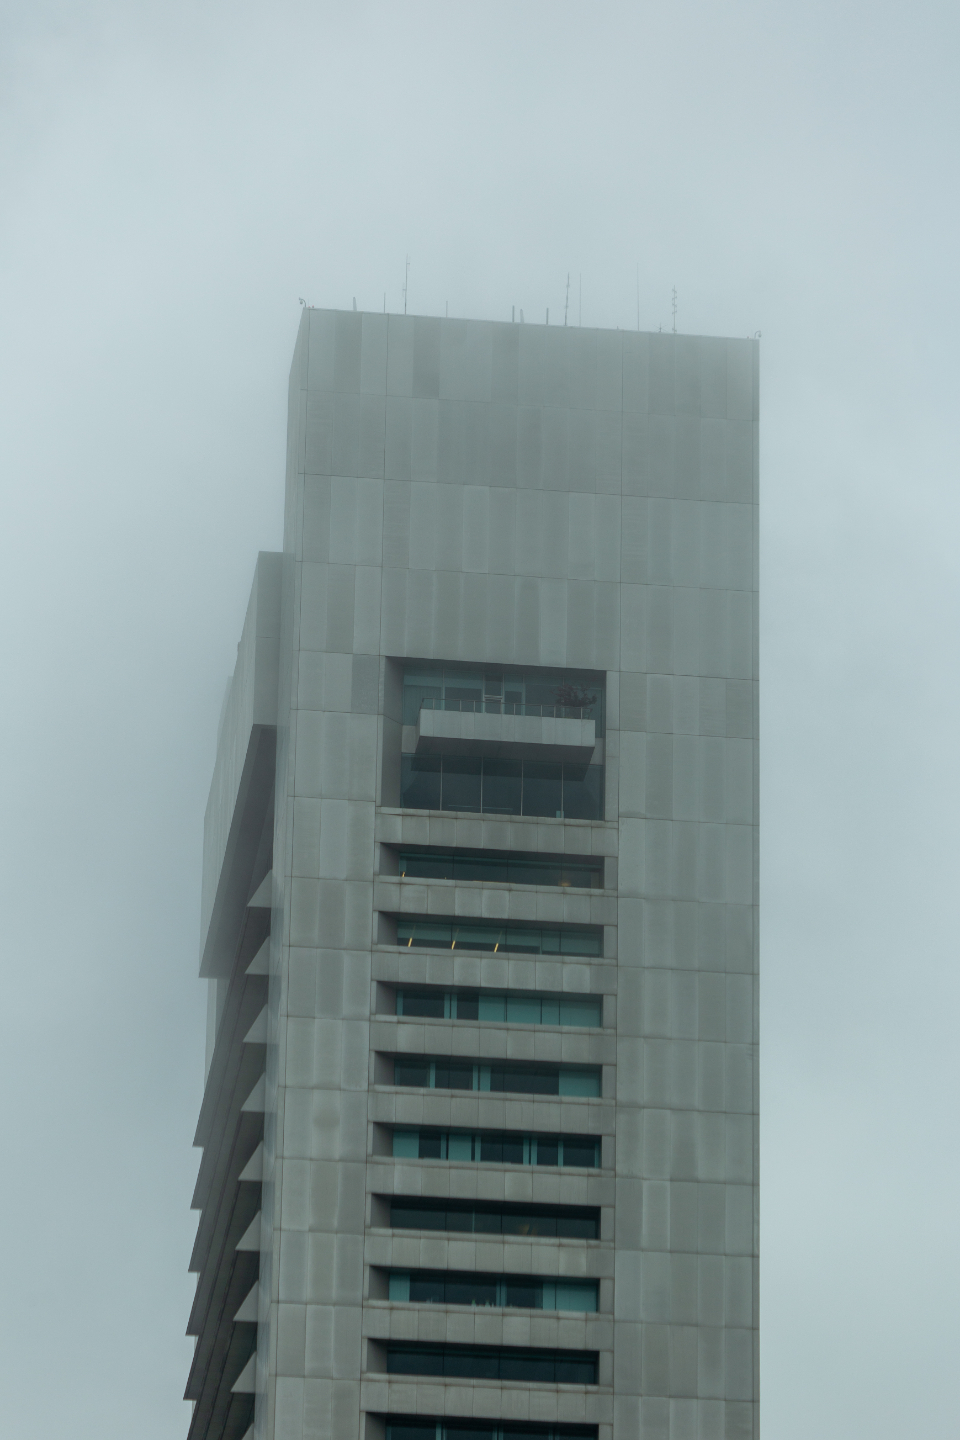 building fog city mist tower moody weather climate air cloudy urban tall perspective architecture exterior design